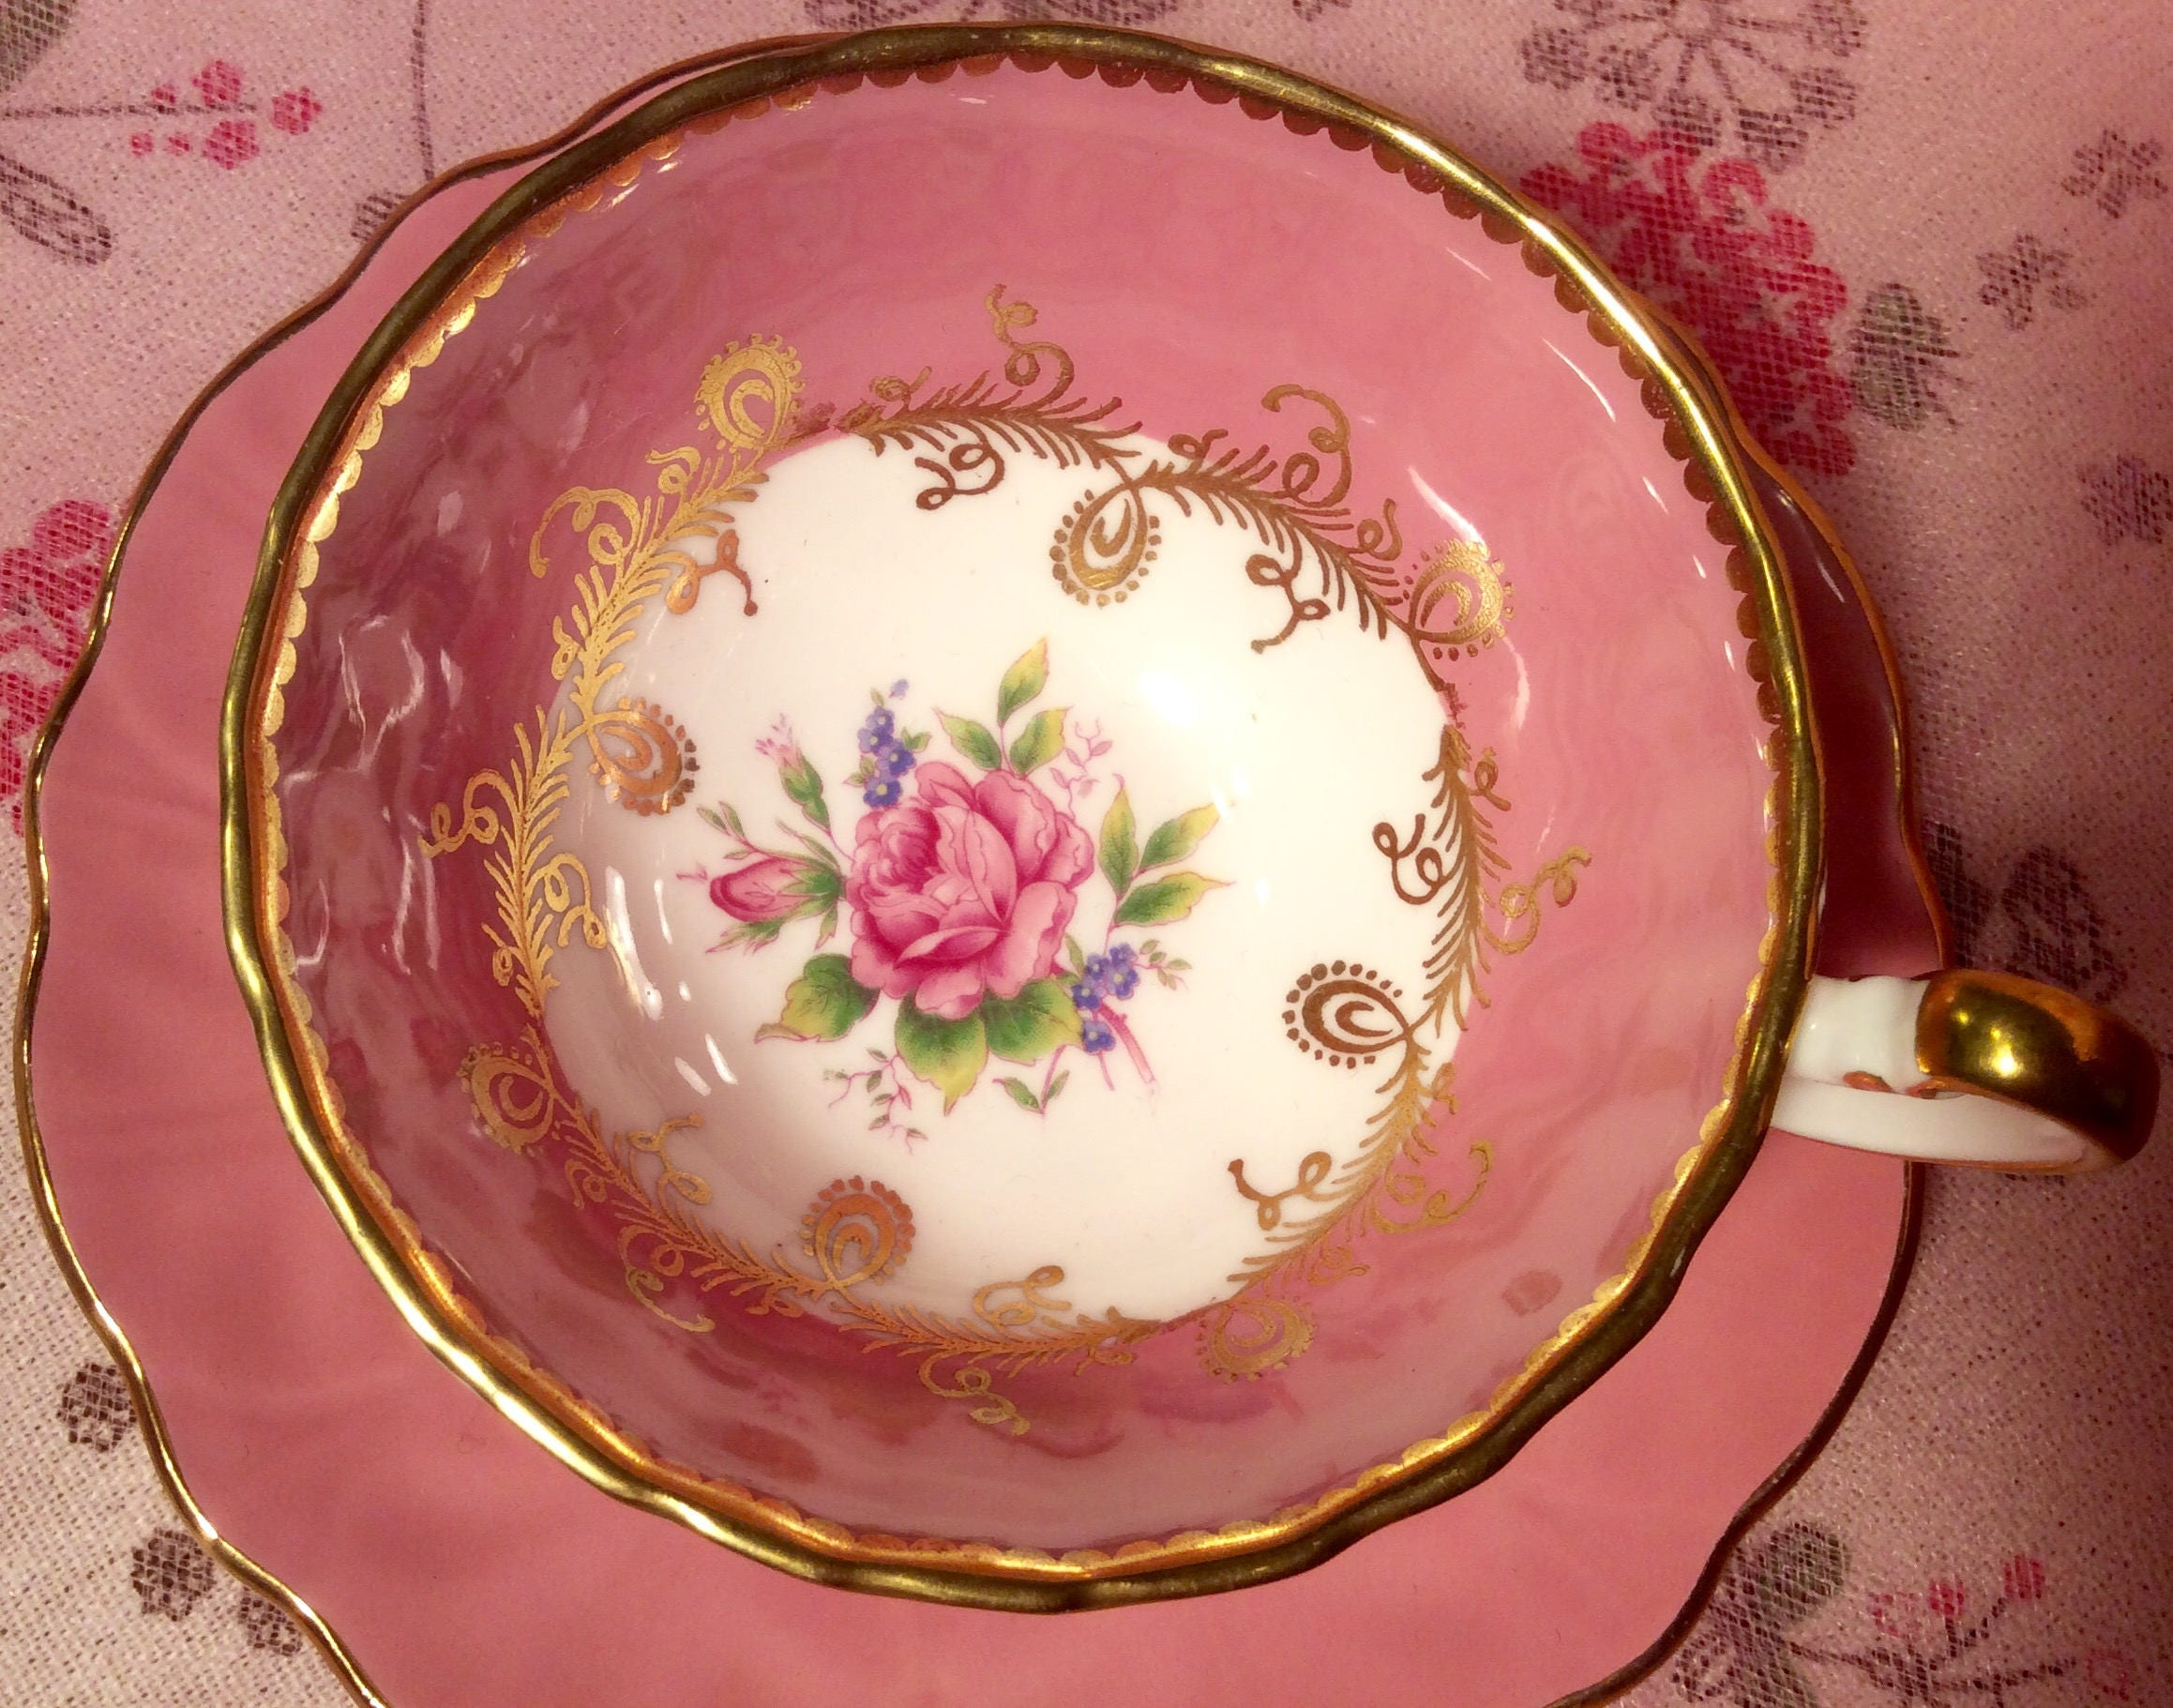 Pretty in Pink-Spectacular Aynsley Pedestal Teacup and Saucer